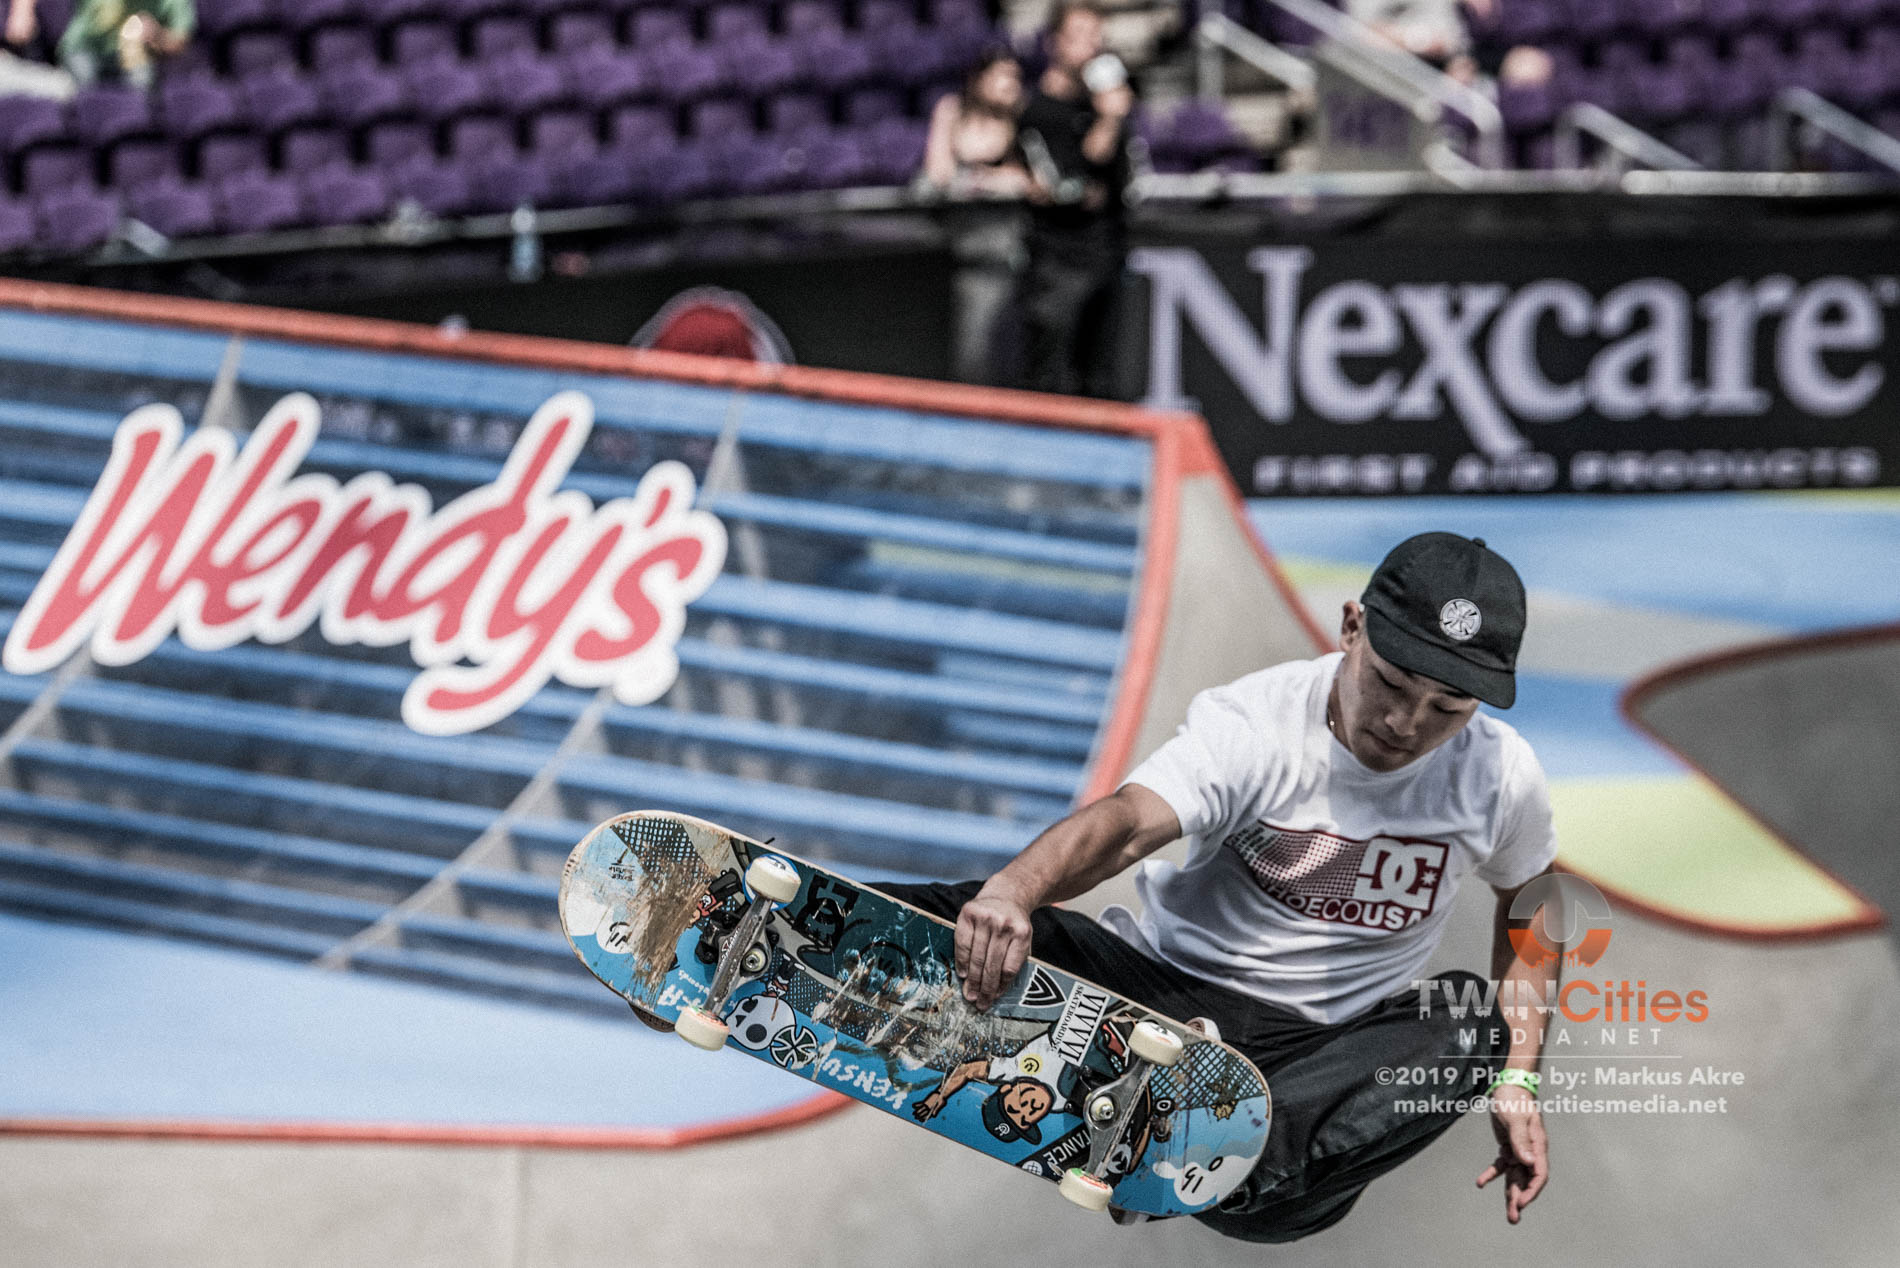 2019-X-Games-Day-4-Mens-Skateboard-Park-9